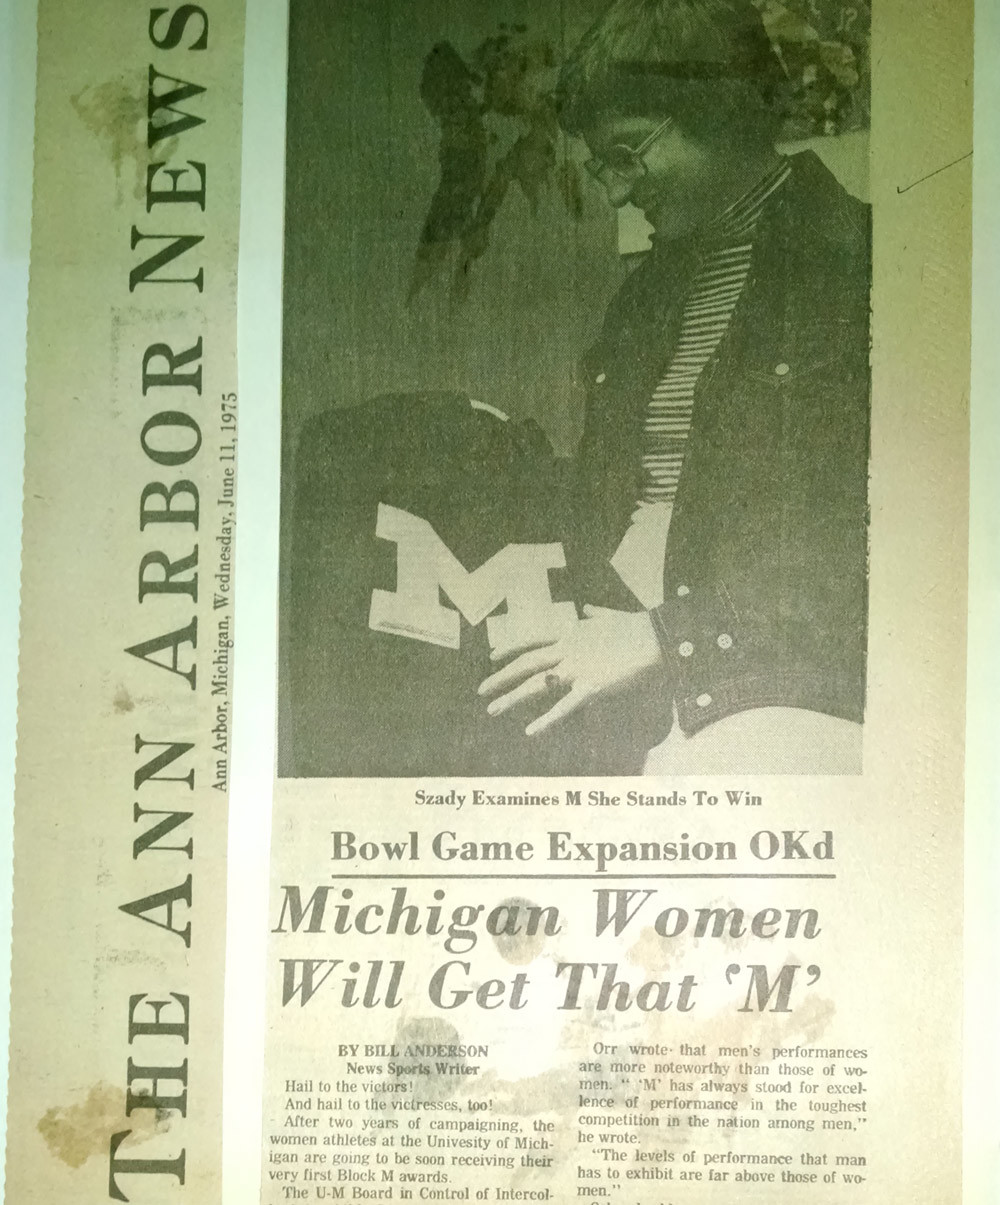 Letter of the Law: How University of Michigan Women Got Their